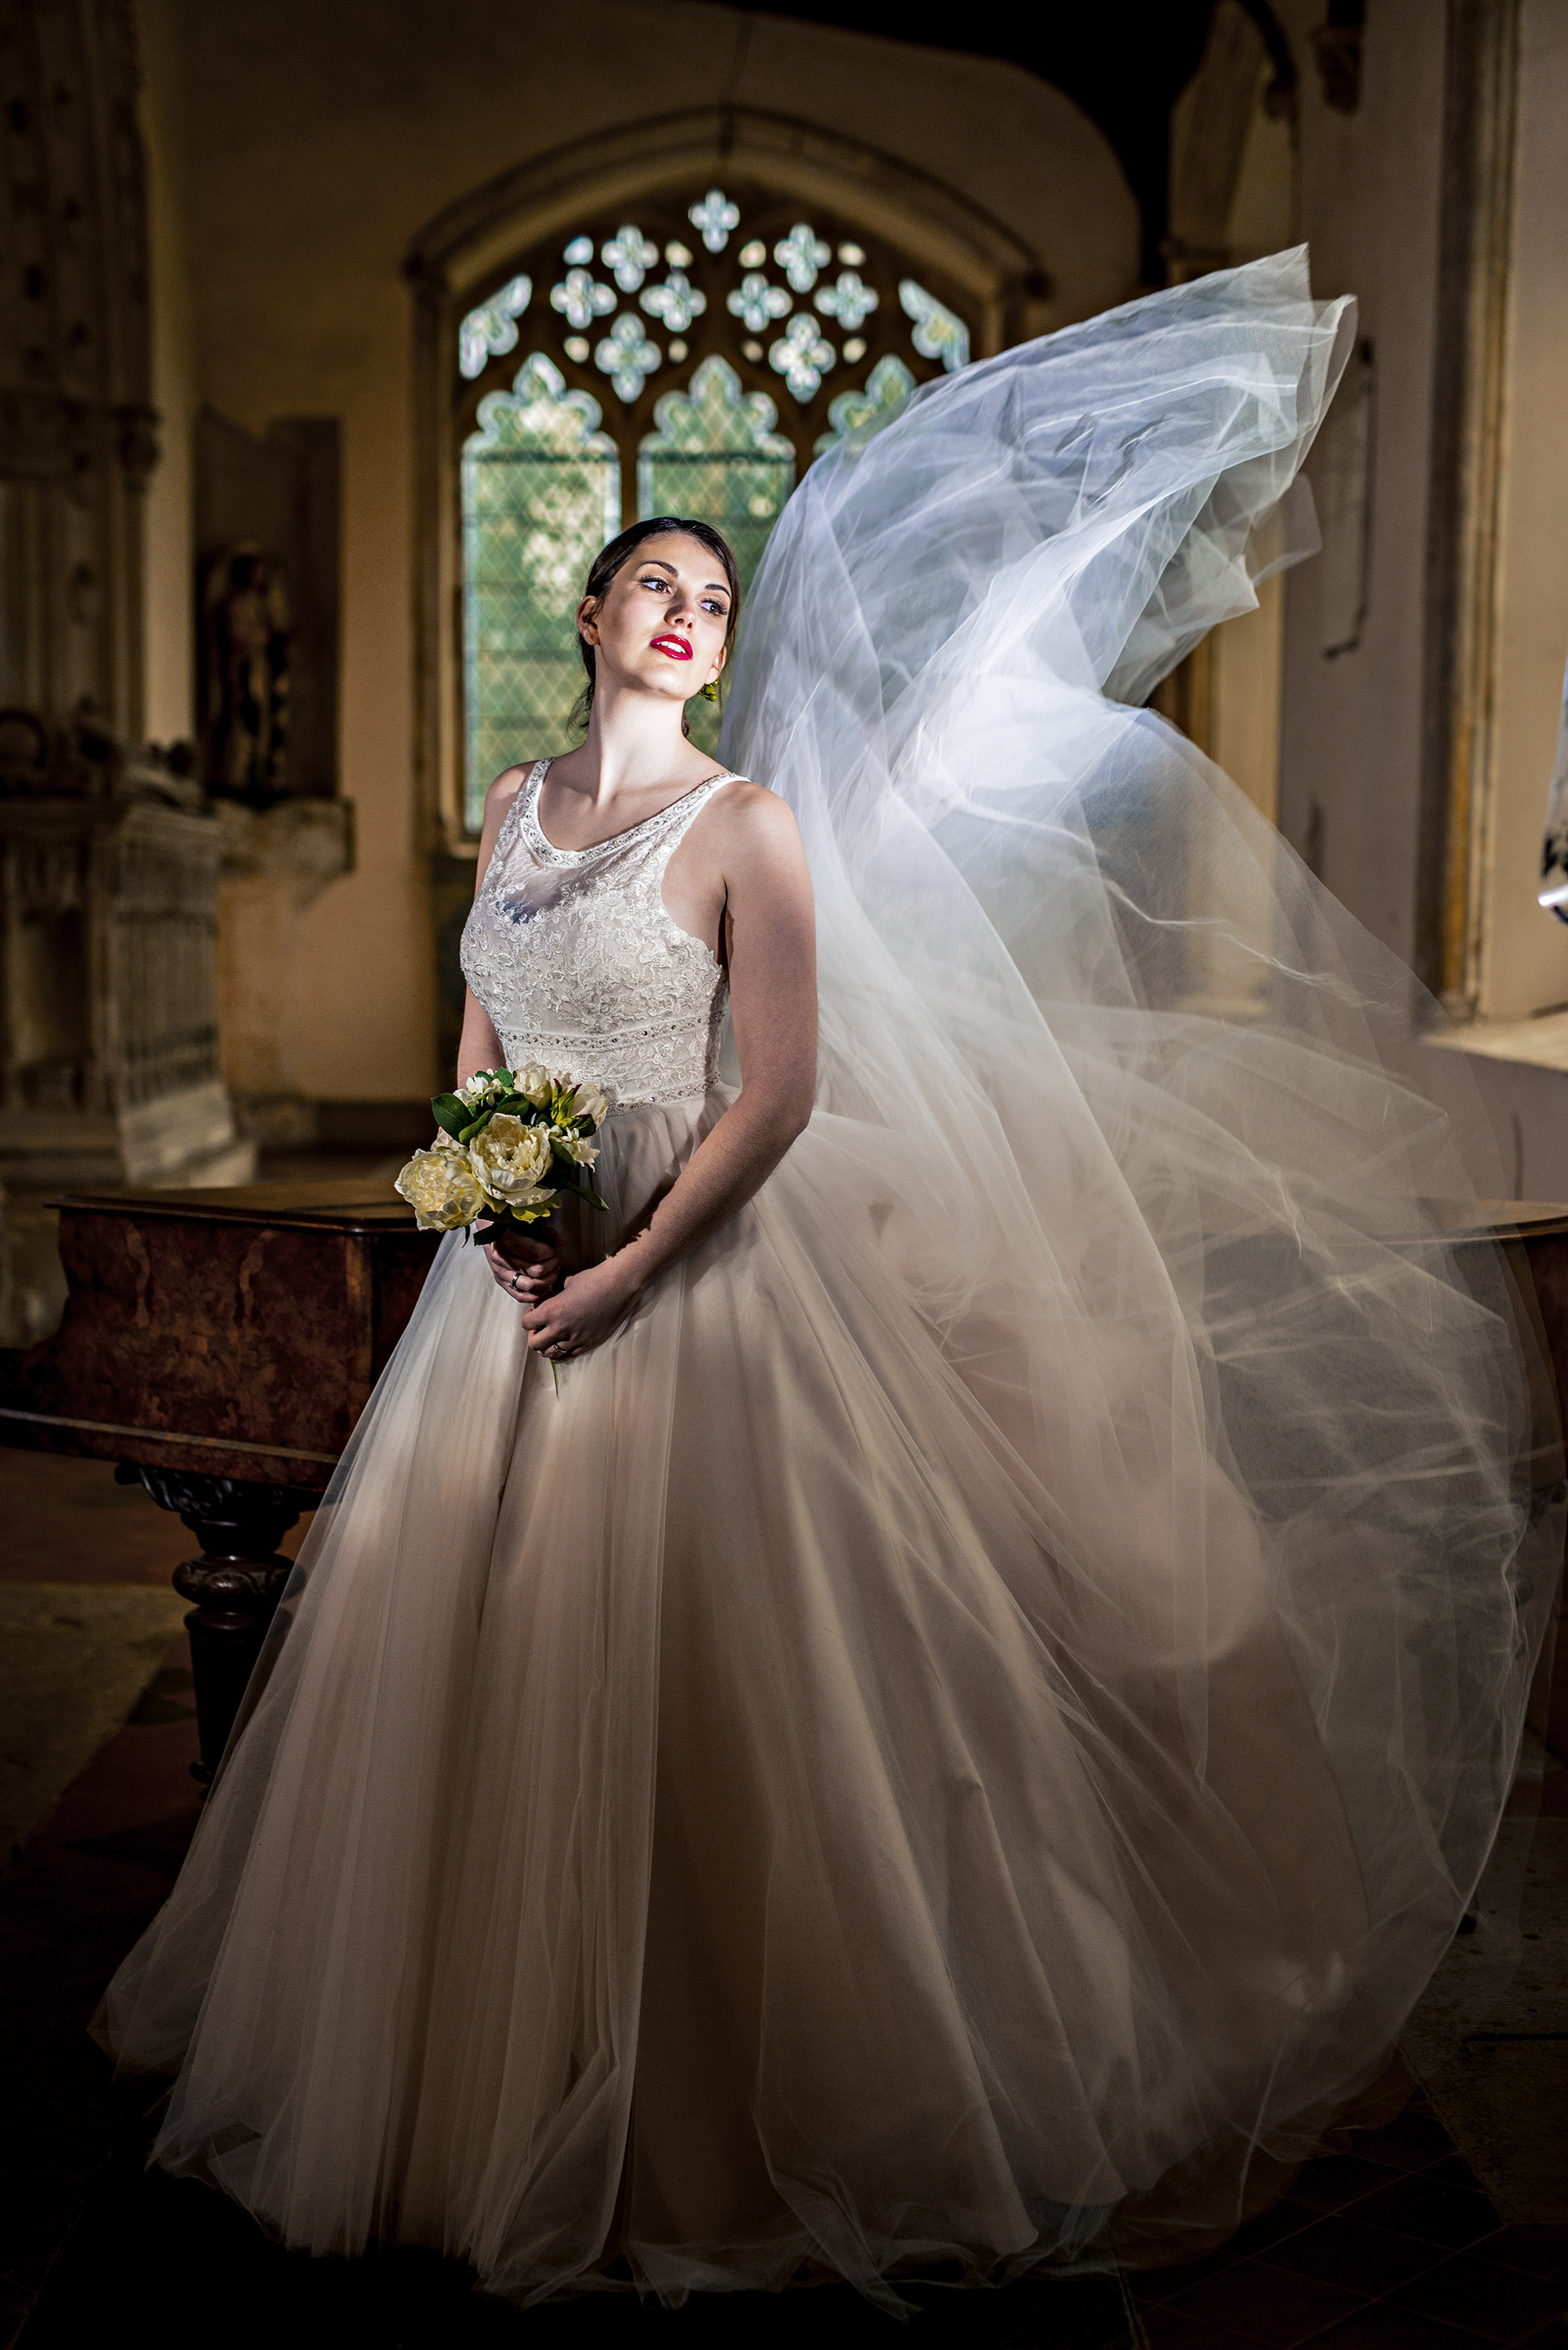 Location Bridal Fashion Photo Shoot - John Ferguson